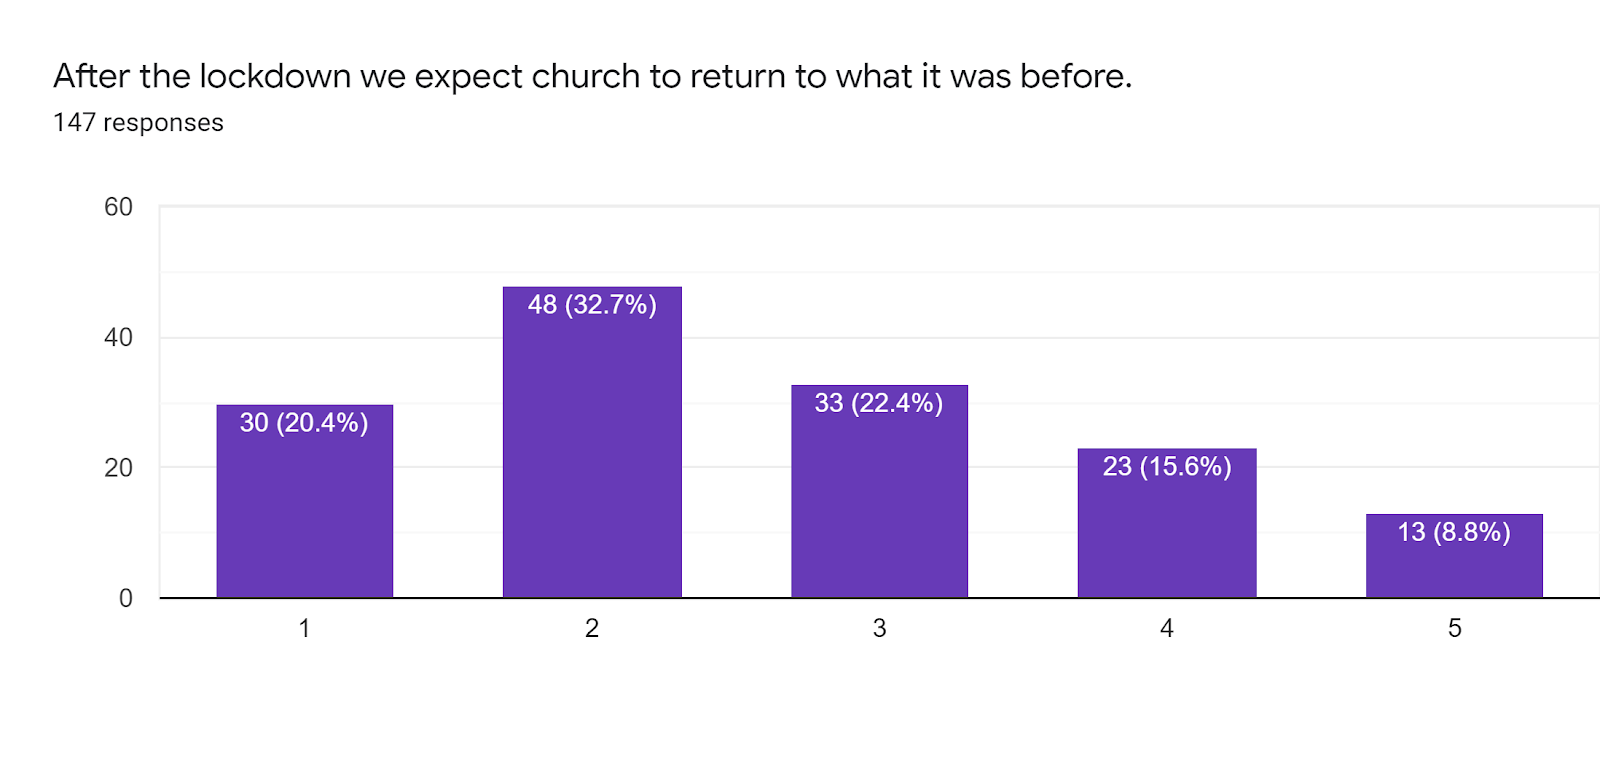 Question title: After the lockdown we expect church to return to what it was before. The majority say they don't.